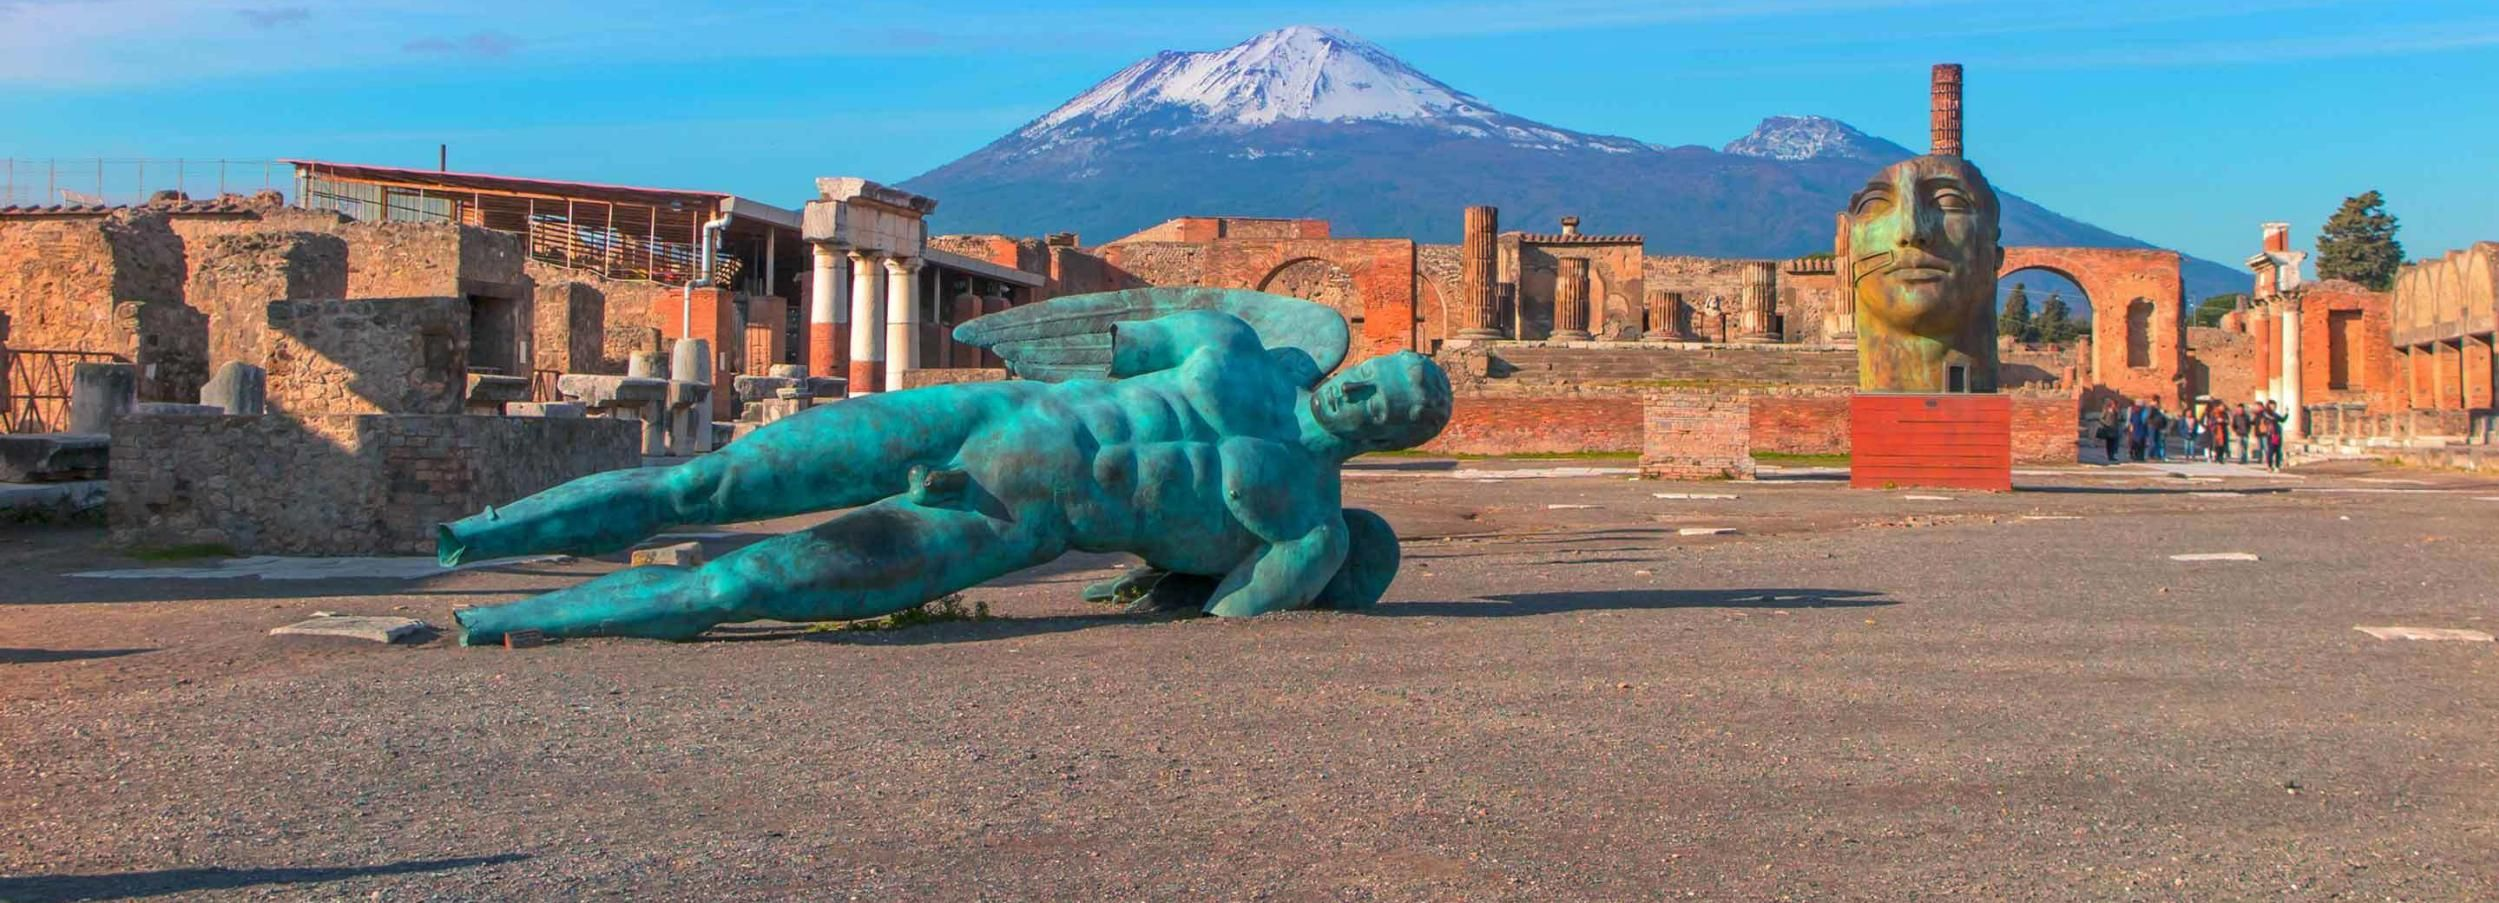 From Rome: Pompeii Day Trip by Fast Train and Car